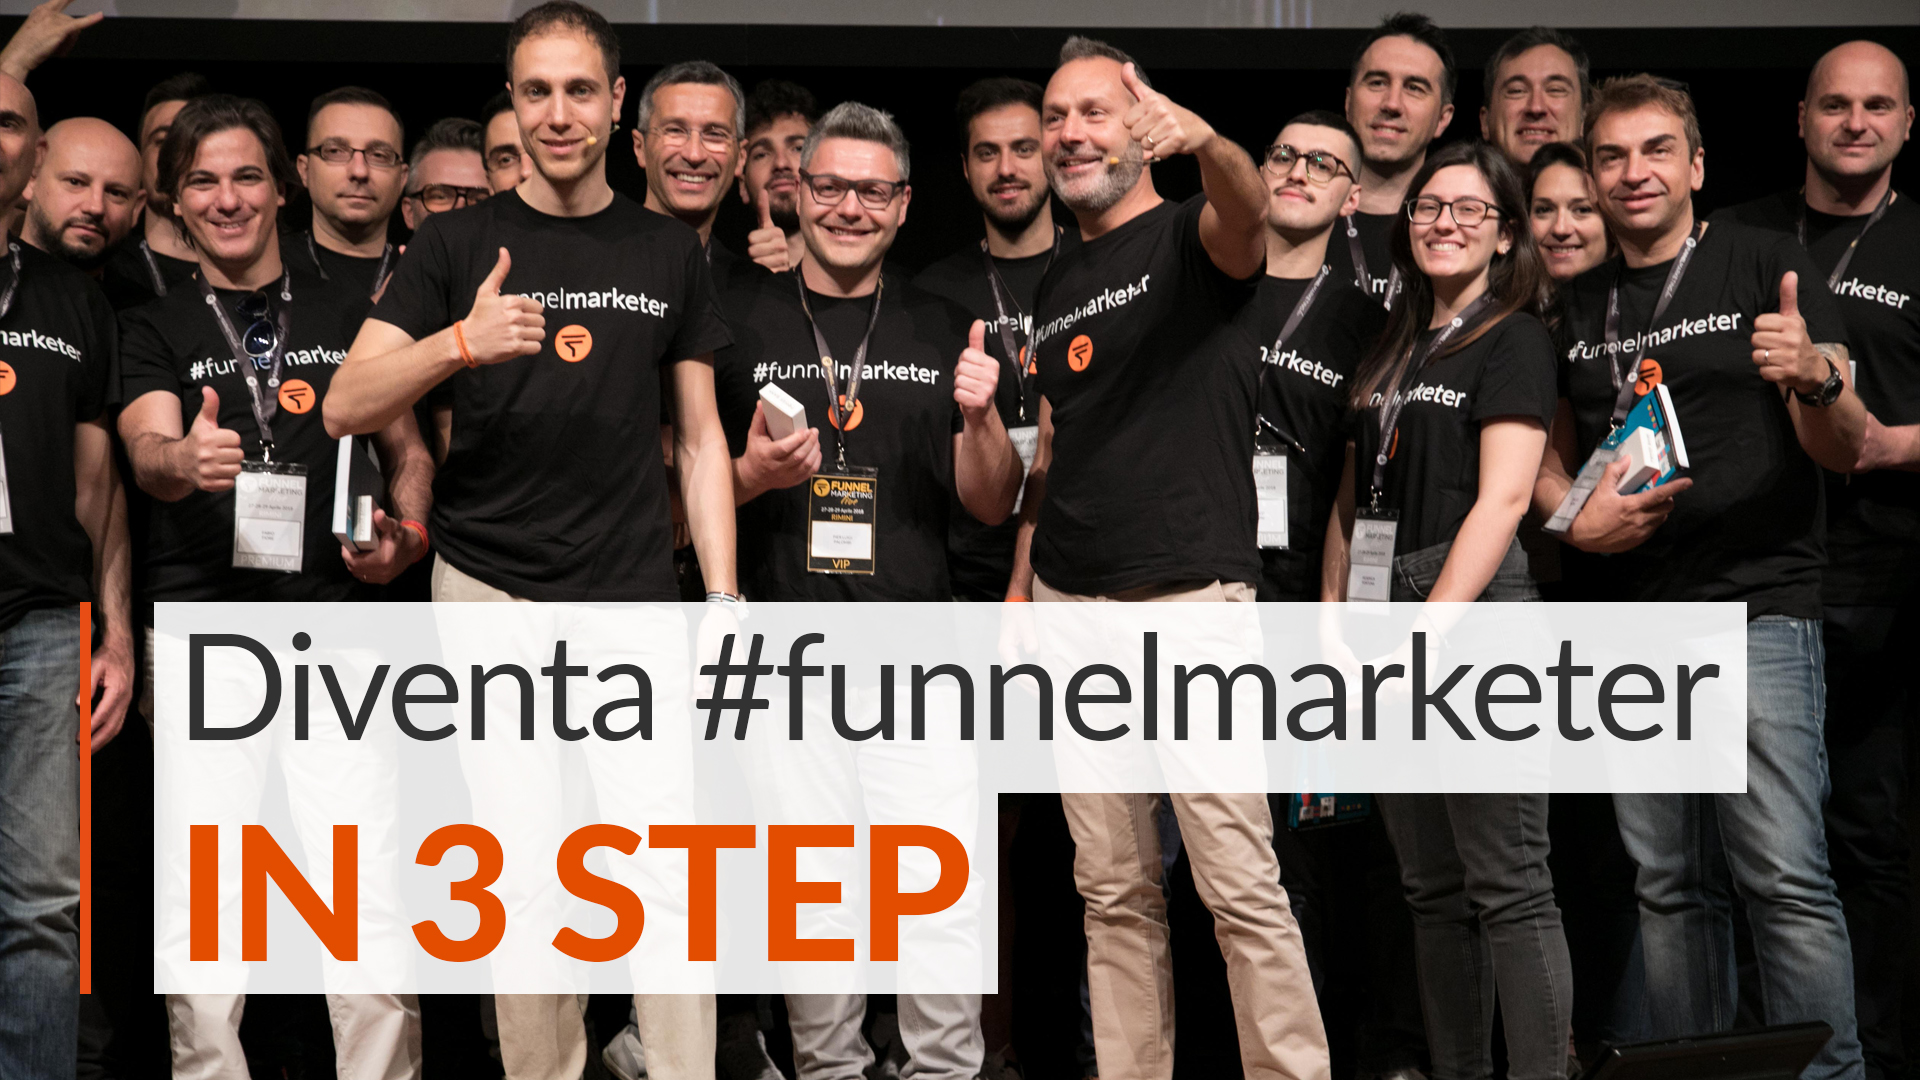 Diventa #funnelmarketer in 3 Step